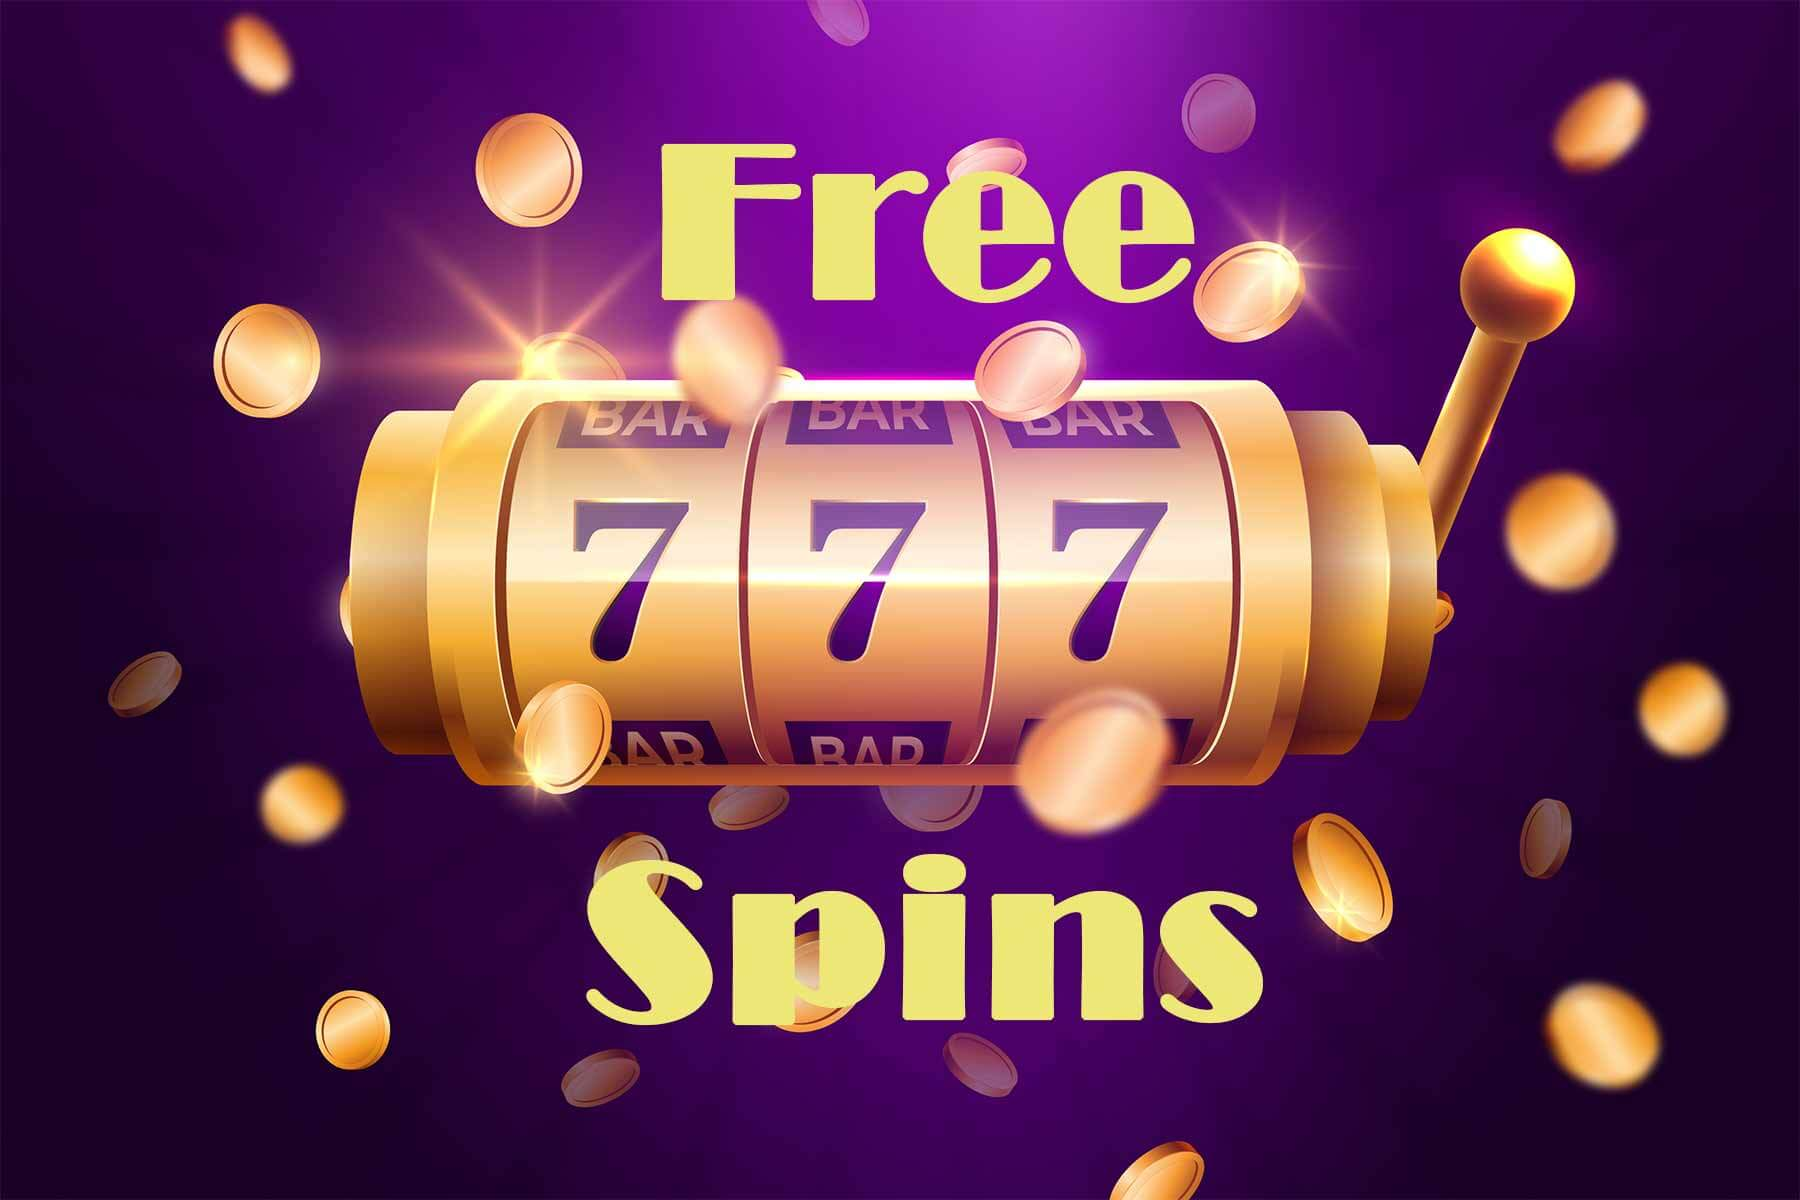 How Do Free Spins Work?